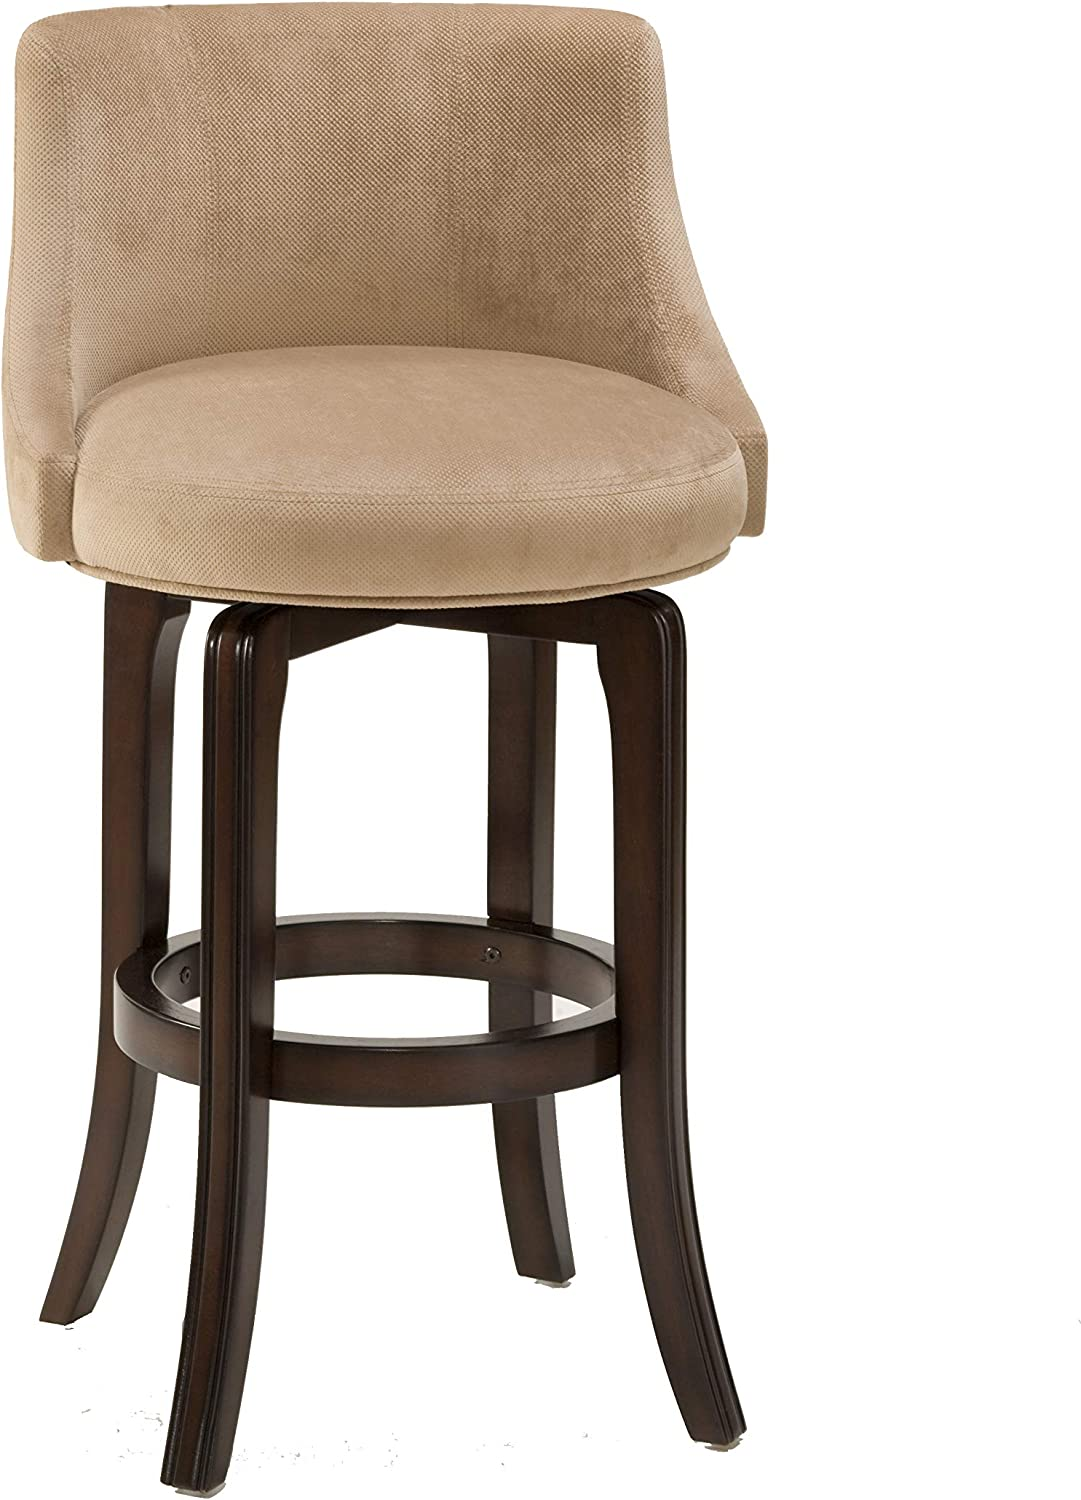 Hillsdale Furniture 4294-828I Napa Valley Upholstered Swivel Counter Stool, Height, Khaki